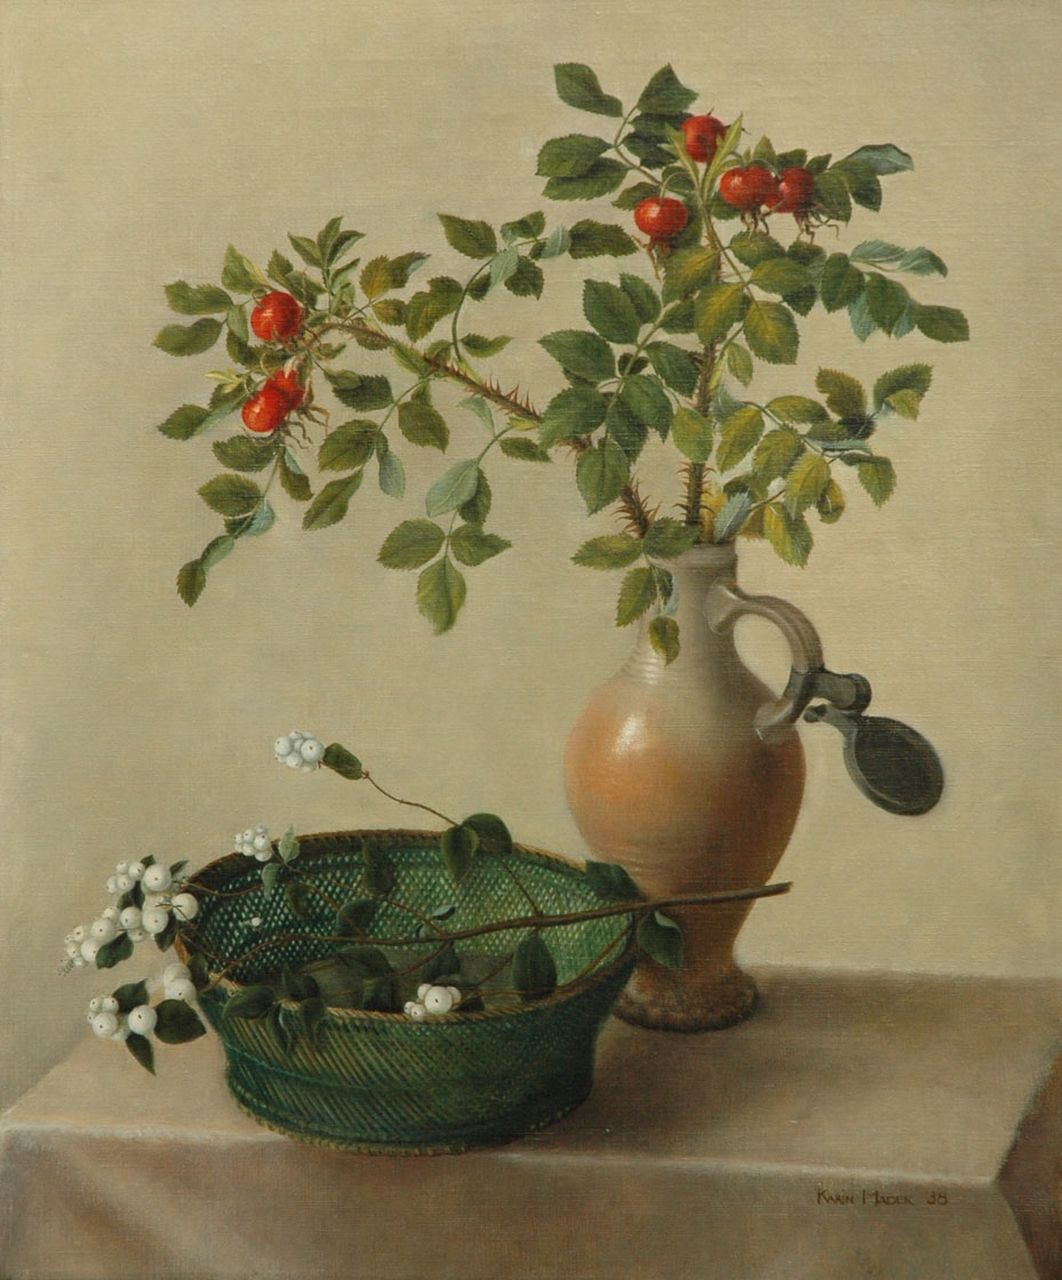 Karin Mader | Still life with branches, oil on canvas, 60.2 x 50.3 cm, signed l.r. and dated '38